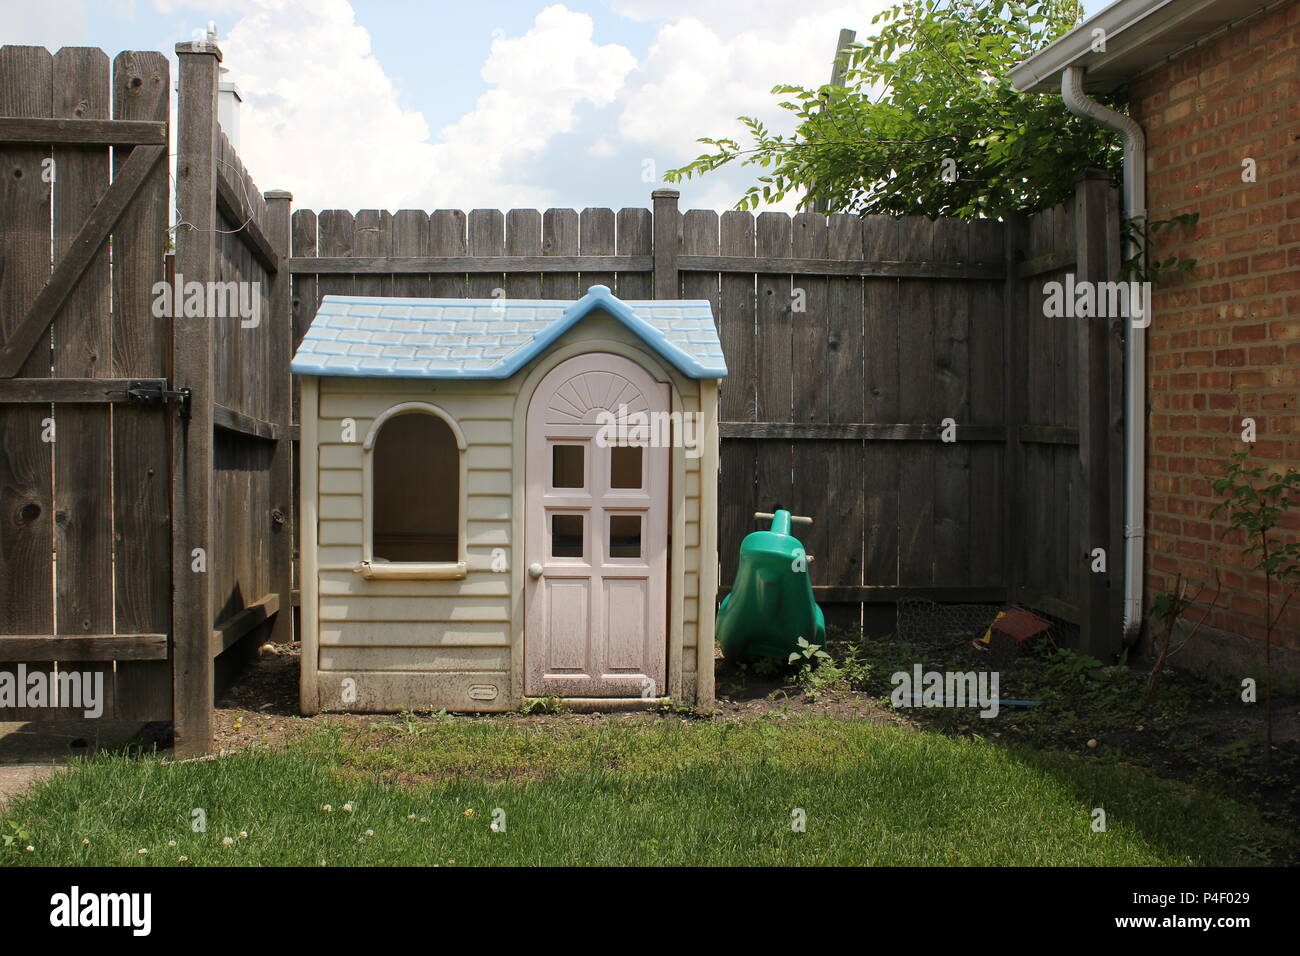 Children's play house and area at home in their own backyard. - Stock Image